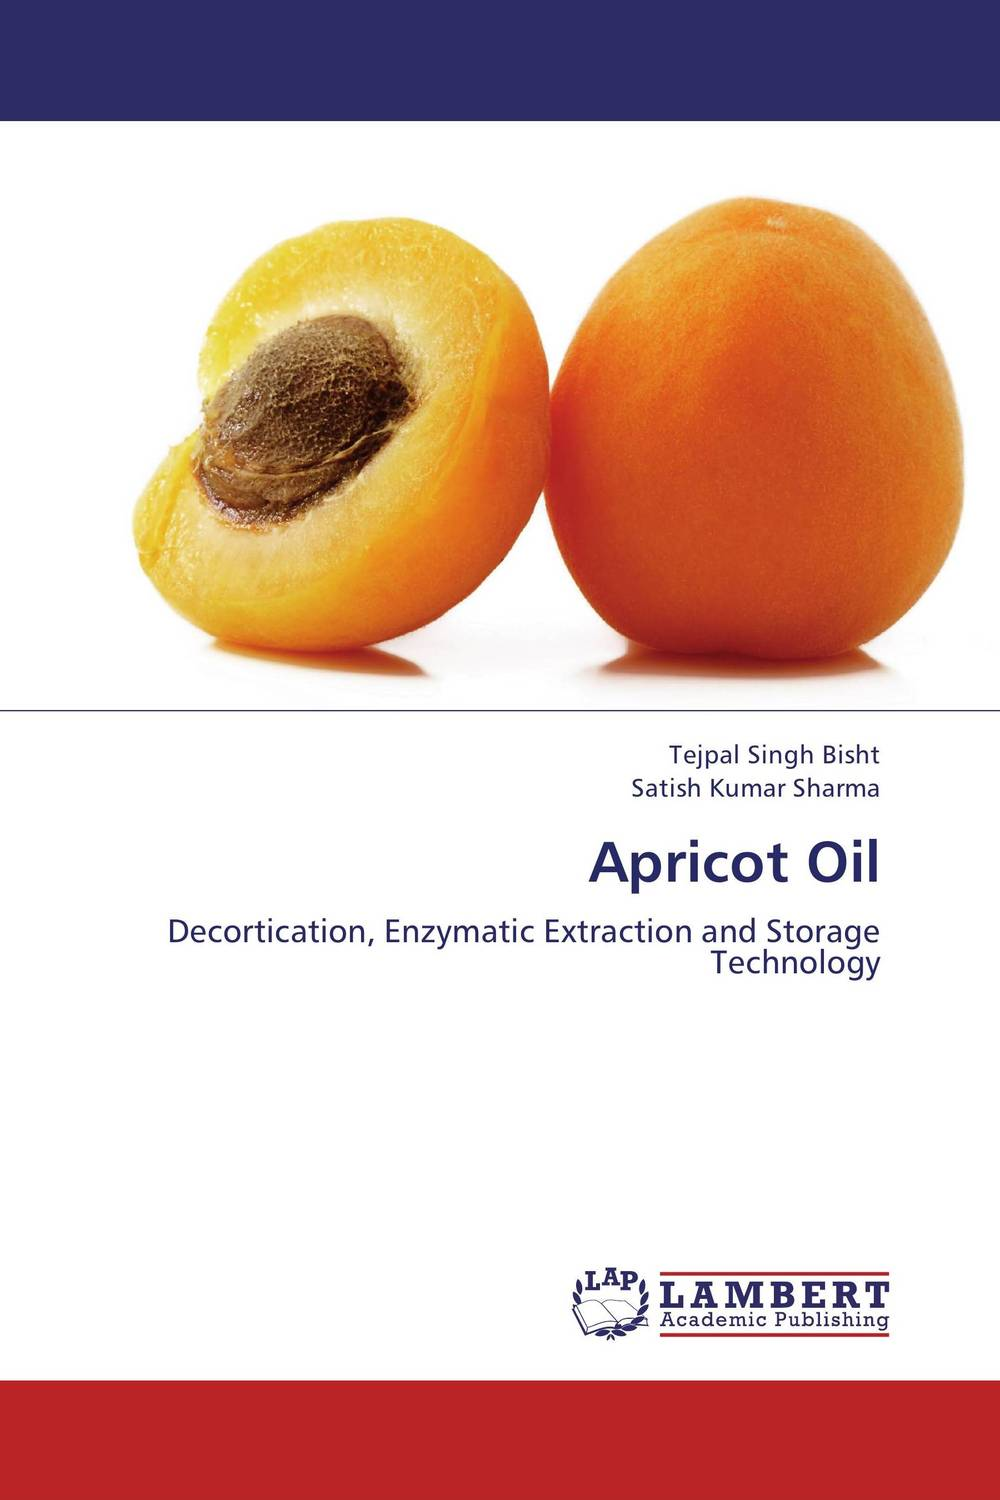 Apricot Oil oil separator integrates well the different techniques of oil separation in the design of its products